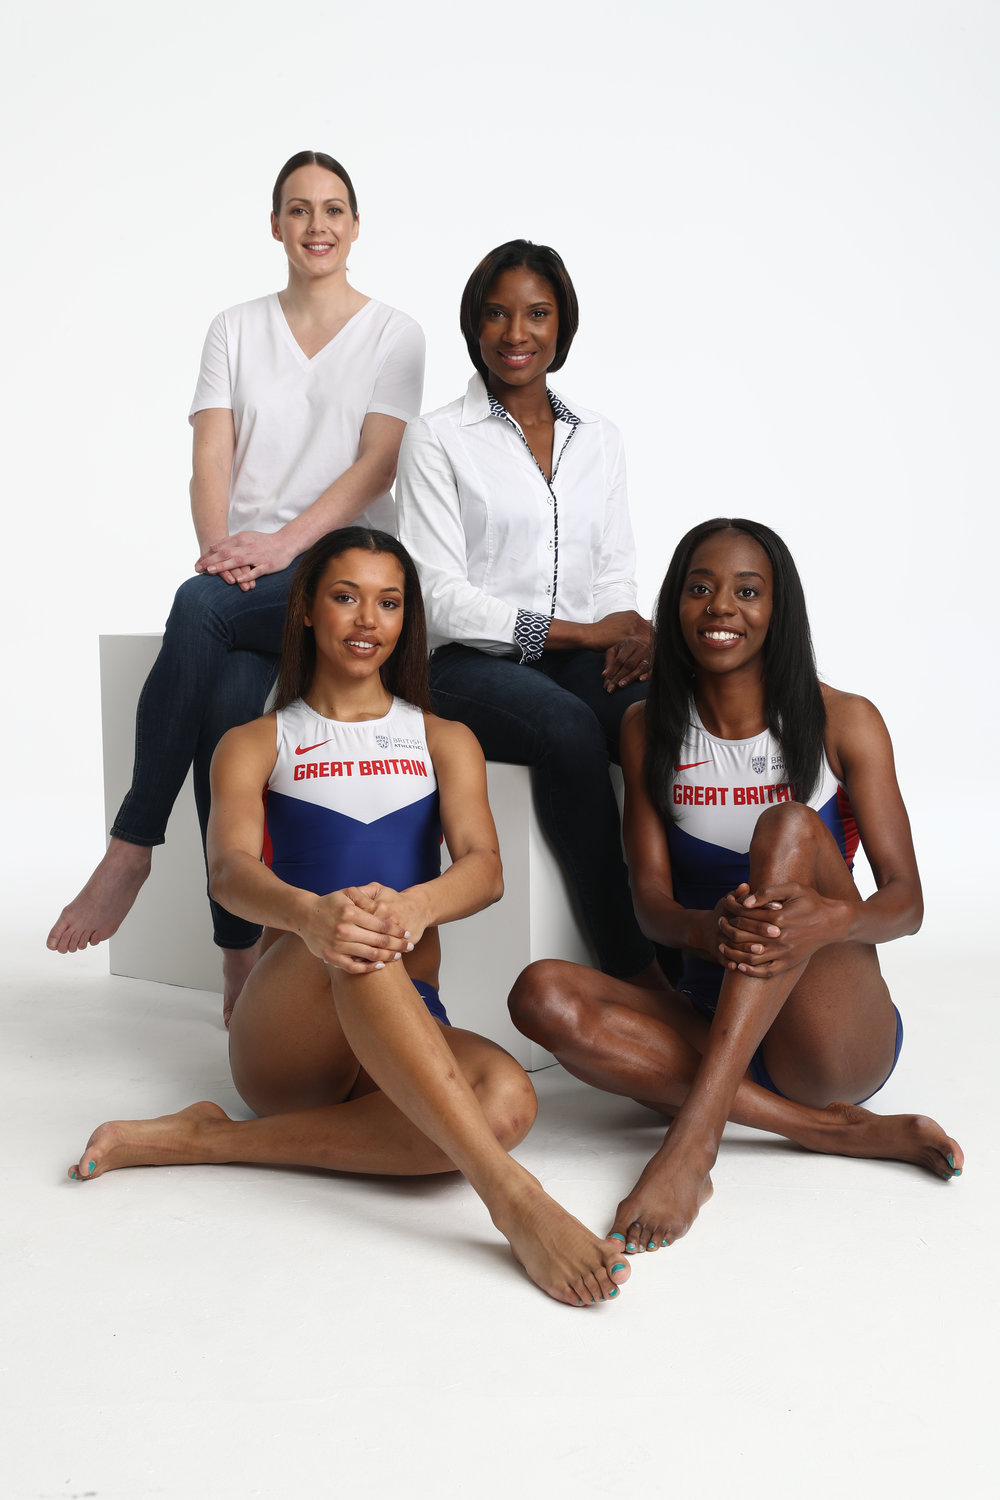 Olympic champion Denise Lewis and double Olympic bronze medallist Kelly Sotherton with two members of the British athletics team